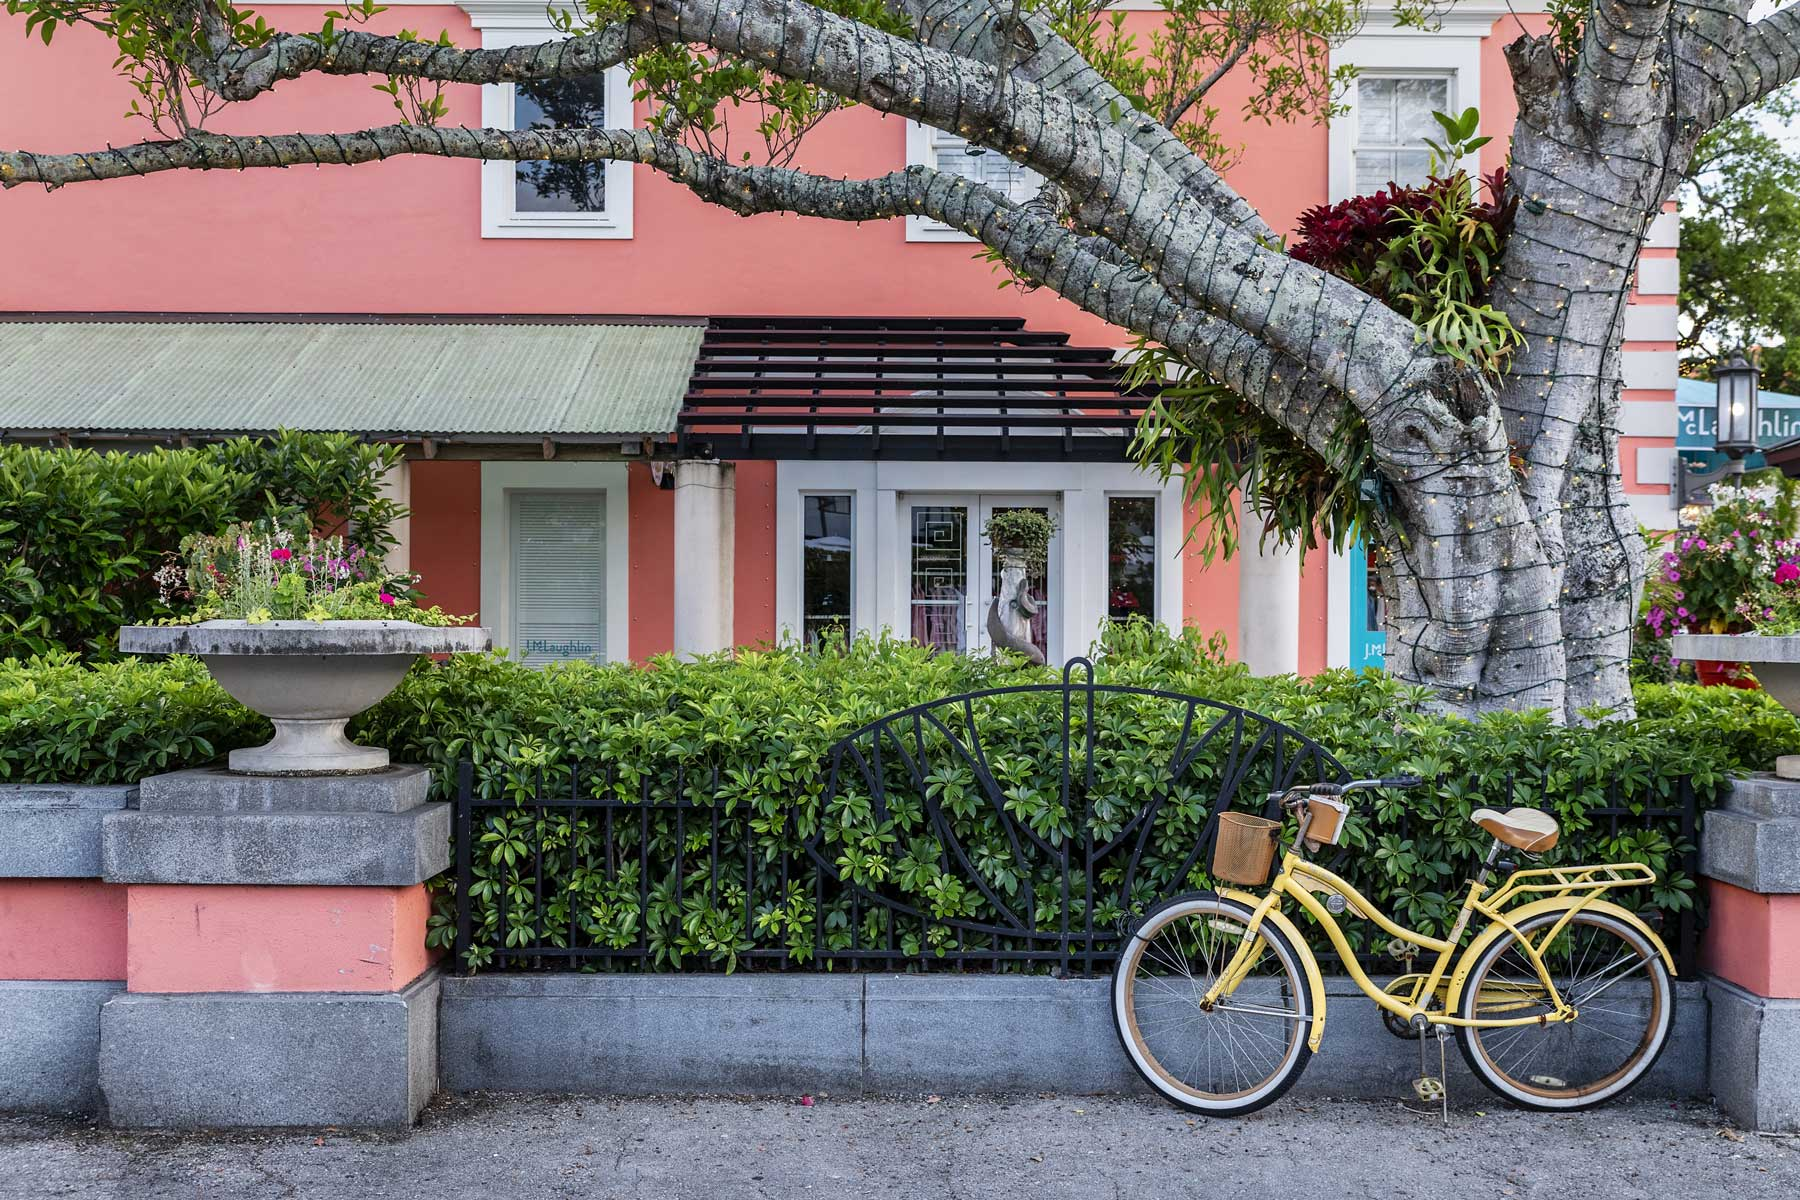 Charming downtown Old Naples in Florida.